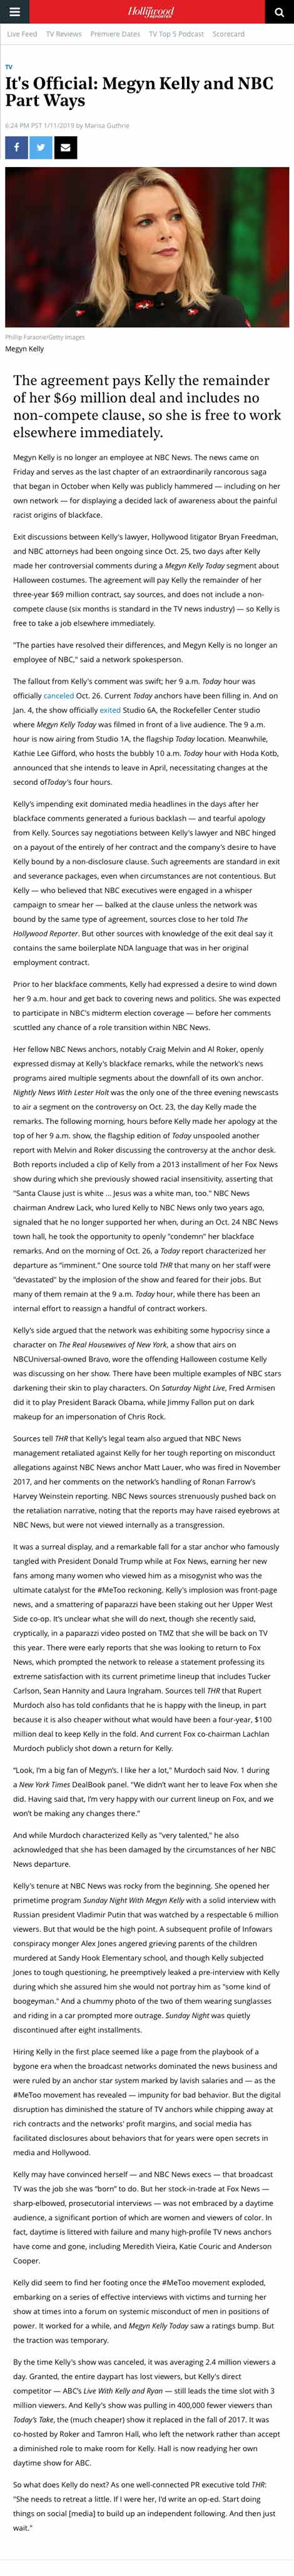 It's Official: Megyn Kelly and NBC Part Ways - article by hollywoodreporter.com